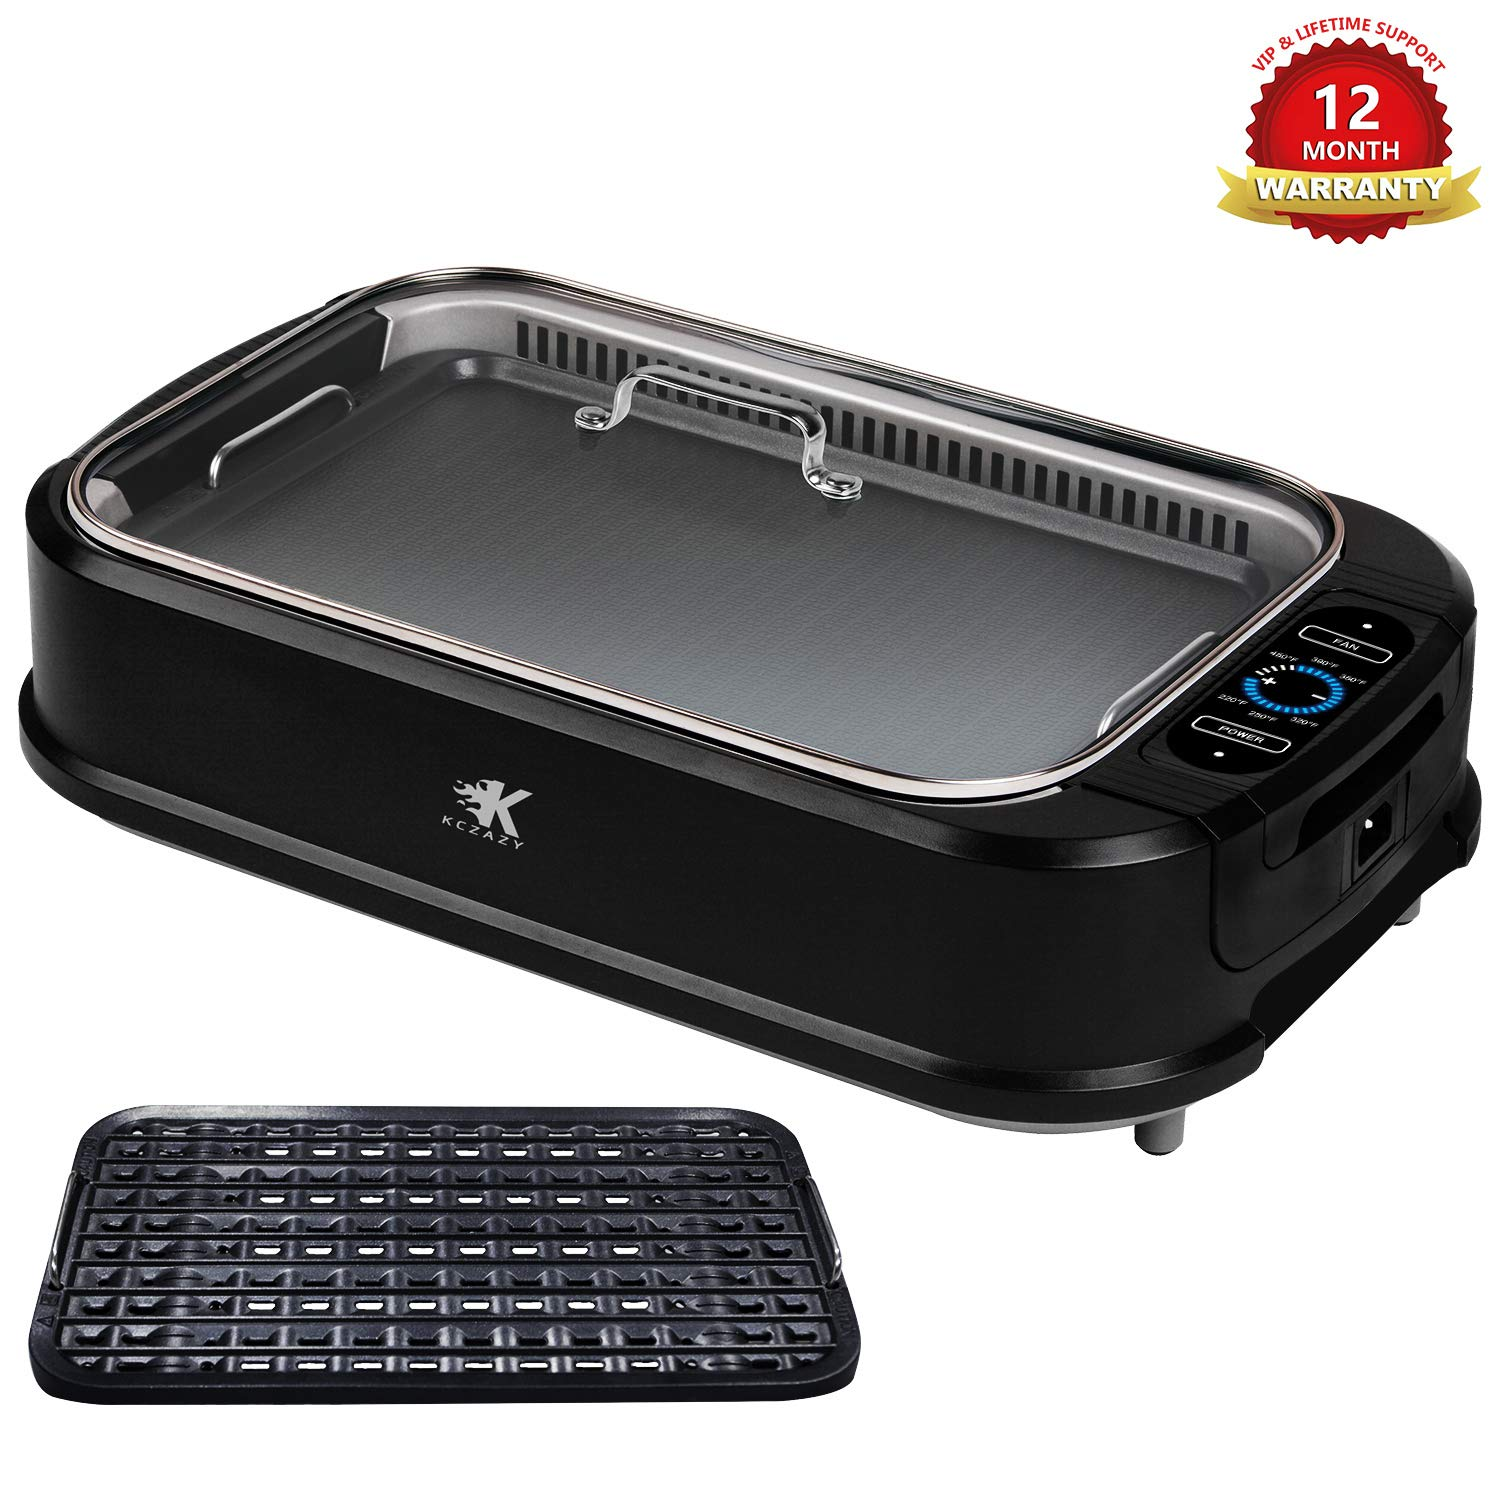 KCZAZY Electric Smokeless Grill with Glass Lid, Indoor and Outdoor Use, Portable BBQ Grilling & Searing, Grill Grate and Griddle Plate Removable, Dishwasher Safe (VIP Support) Gift Box by KCZAZY